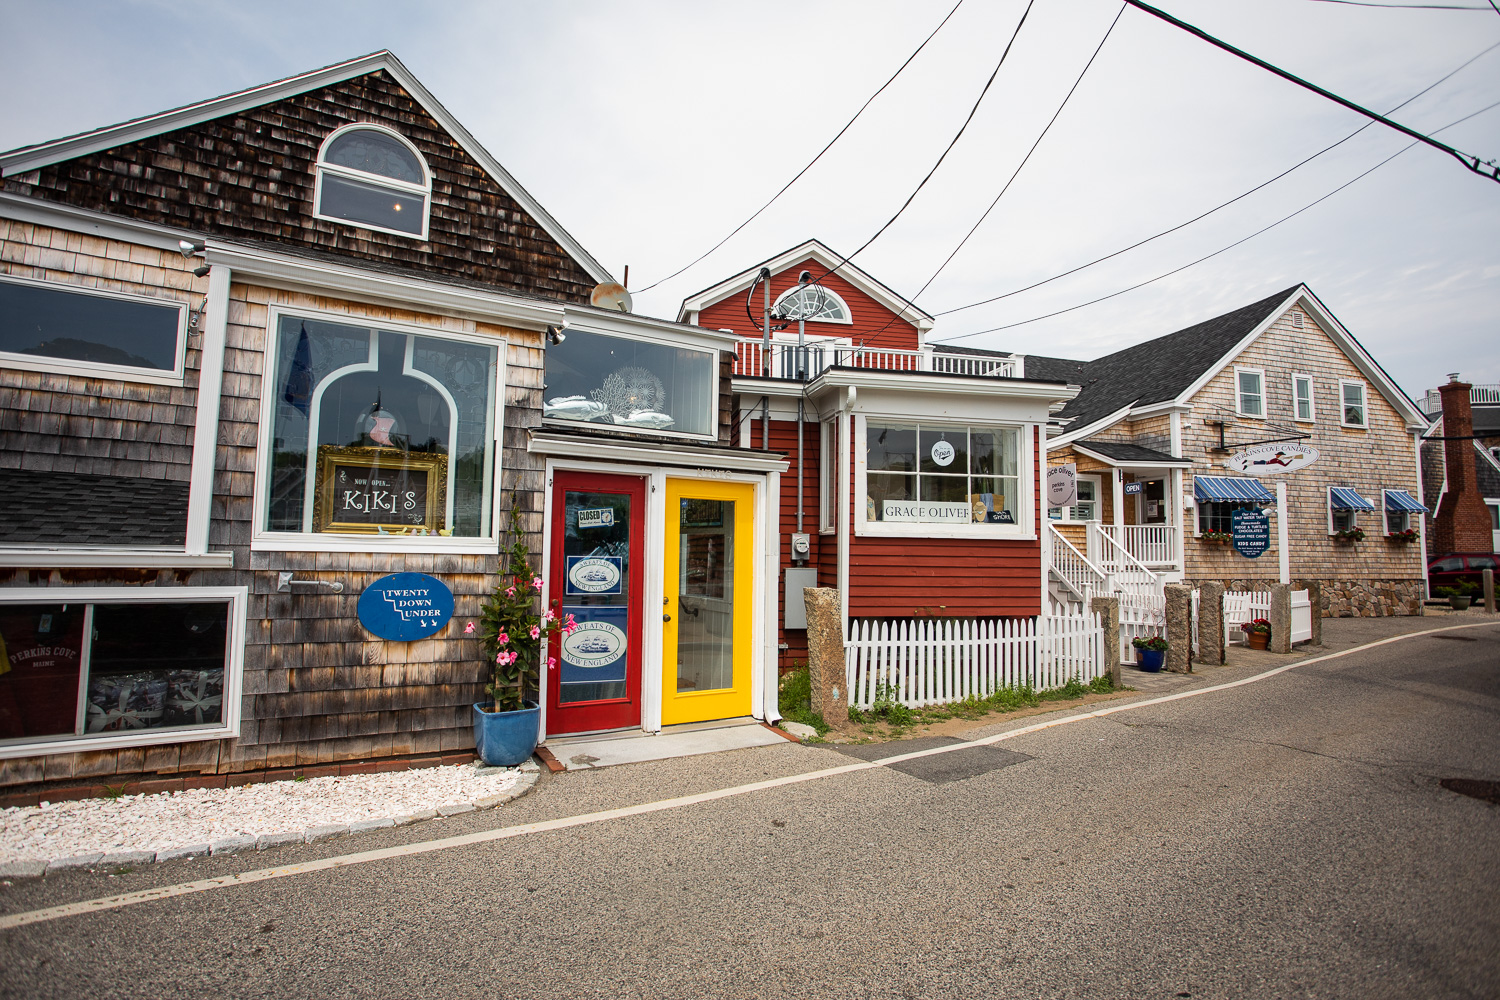 Quaint storefronts in the Sandy Cove part of Ogunquit, Maine.